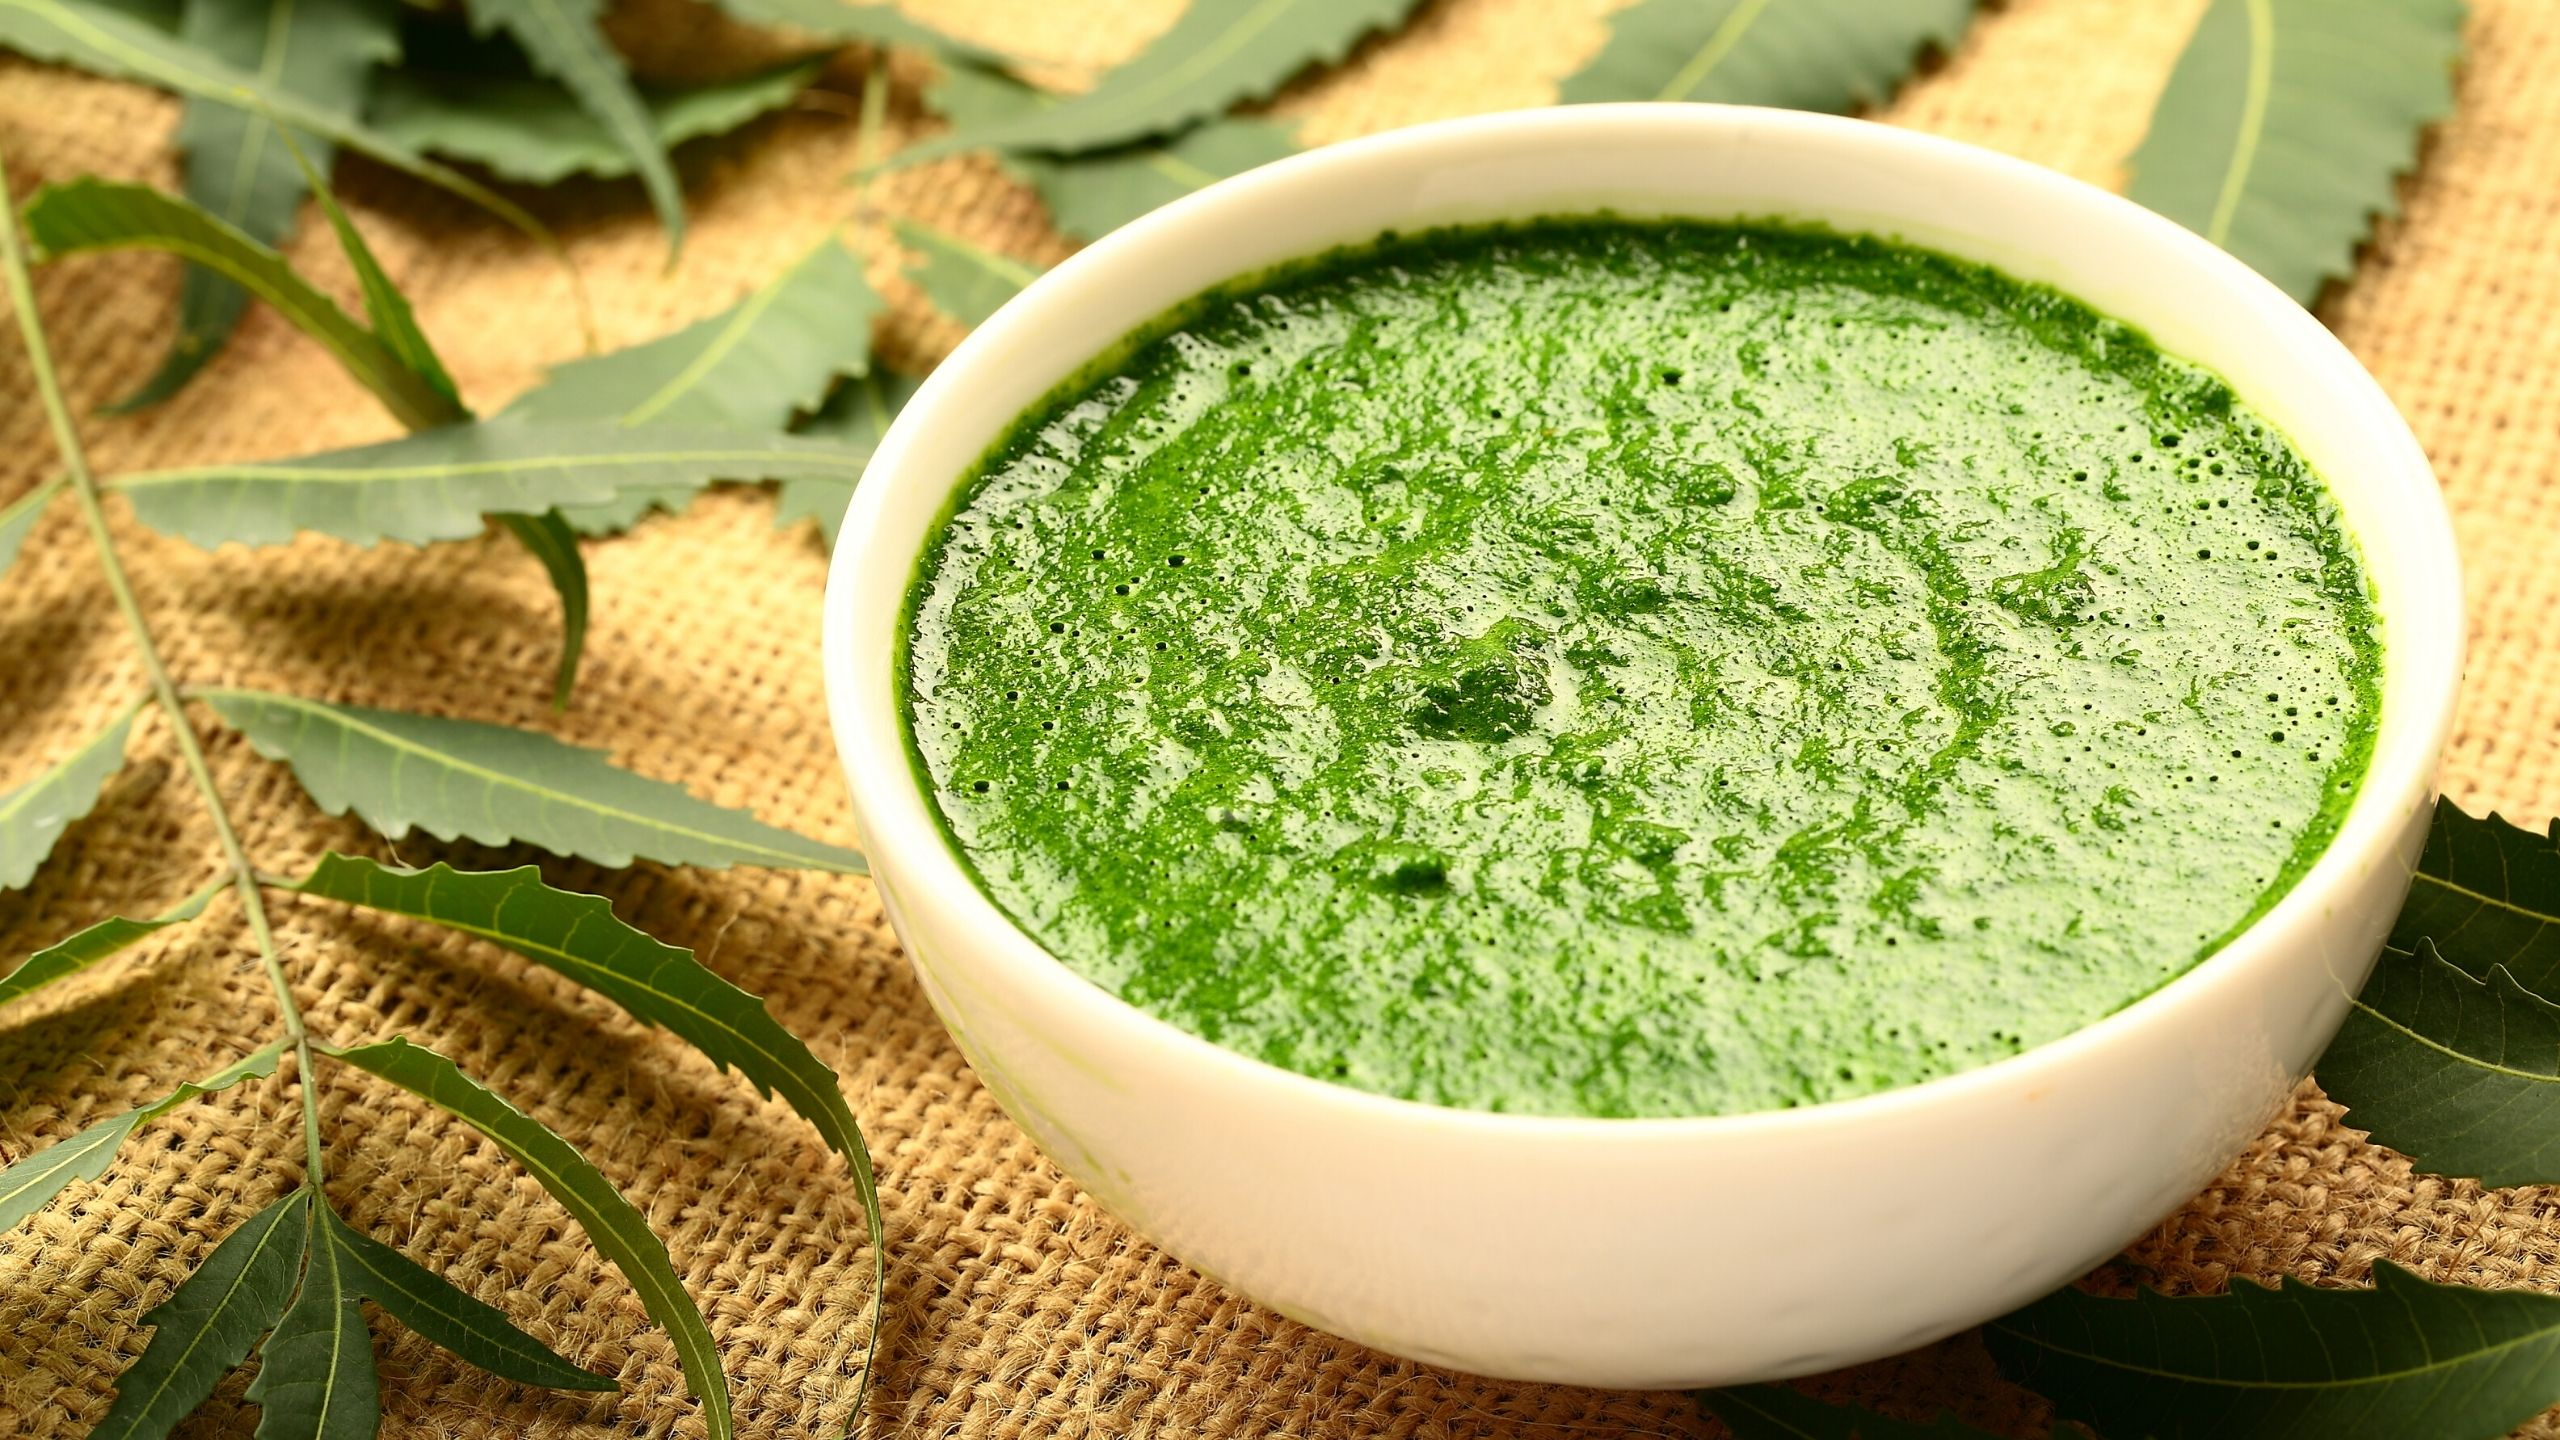 DIY Homemade Neem Face Packs for all skin type